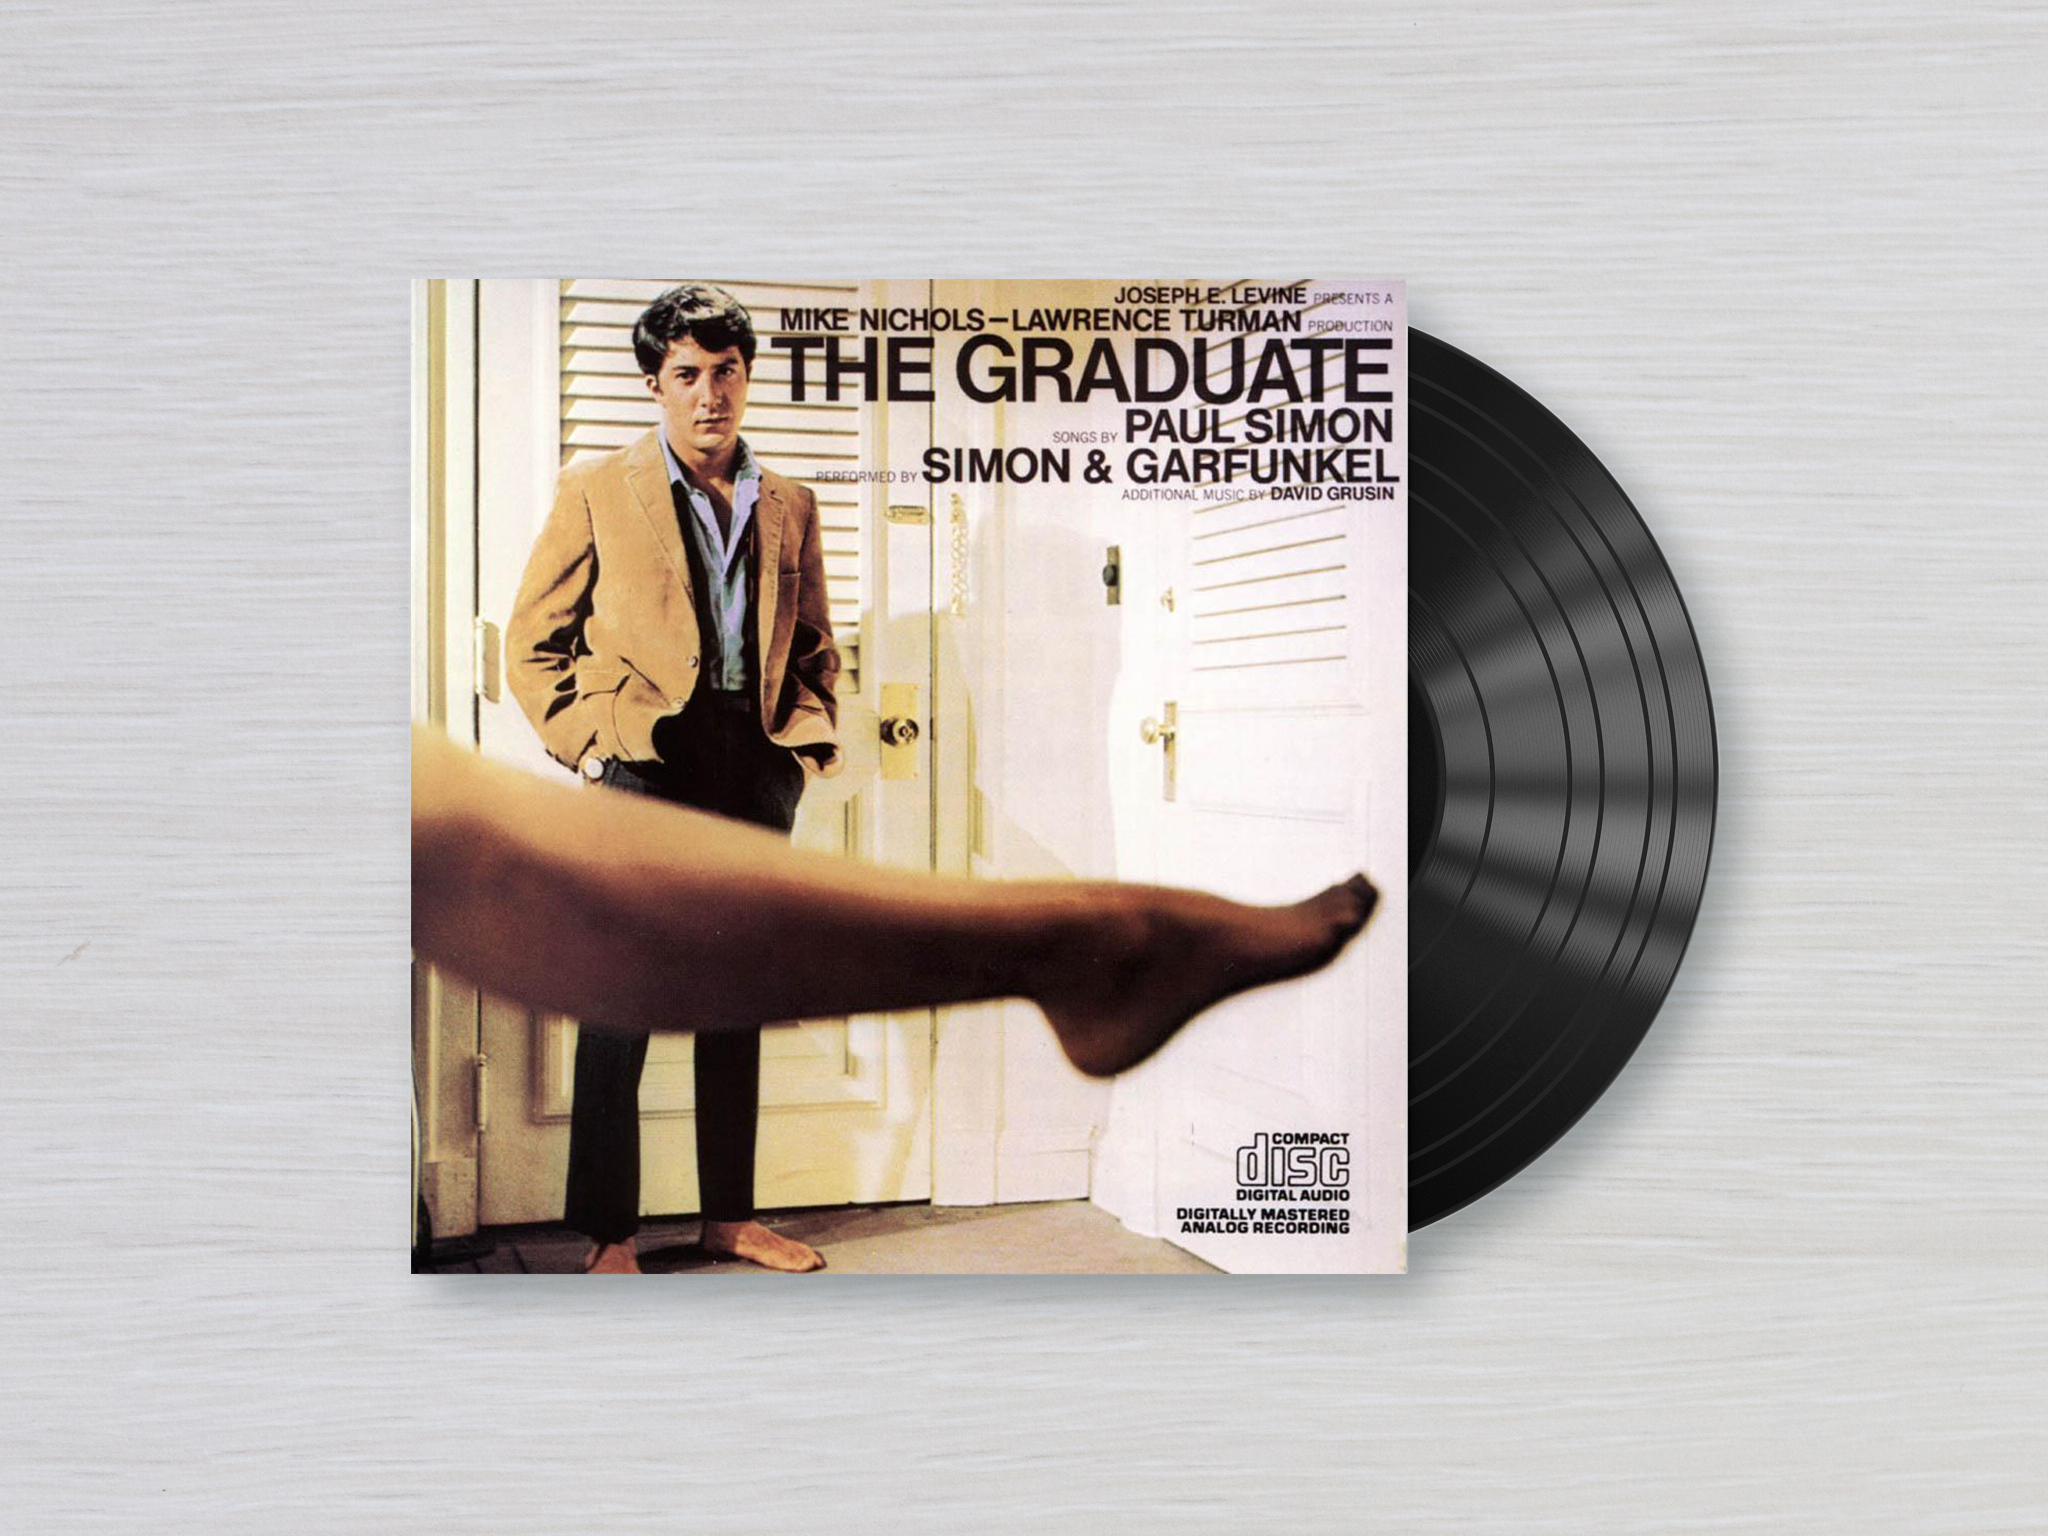 EL soundtrack de The Graduate